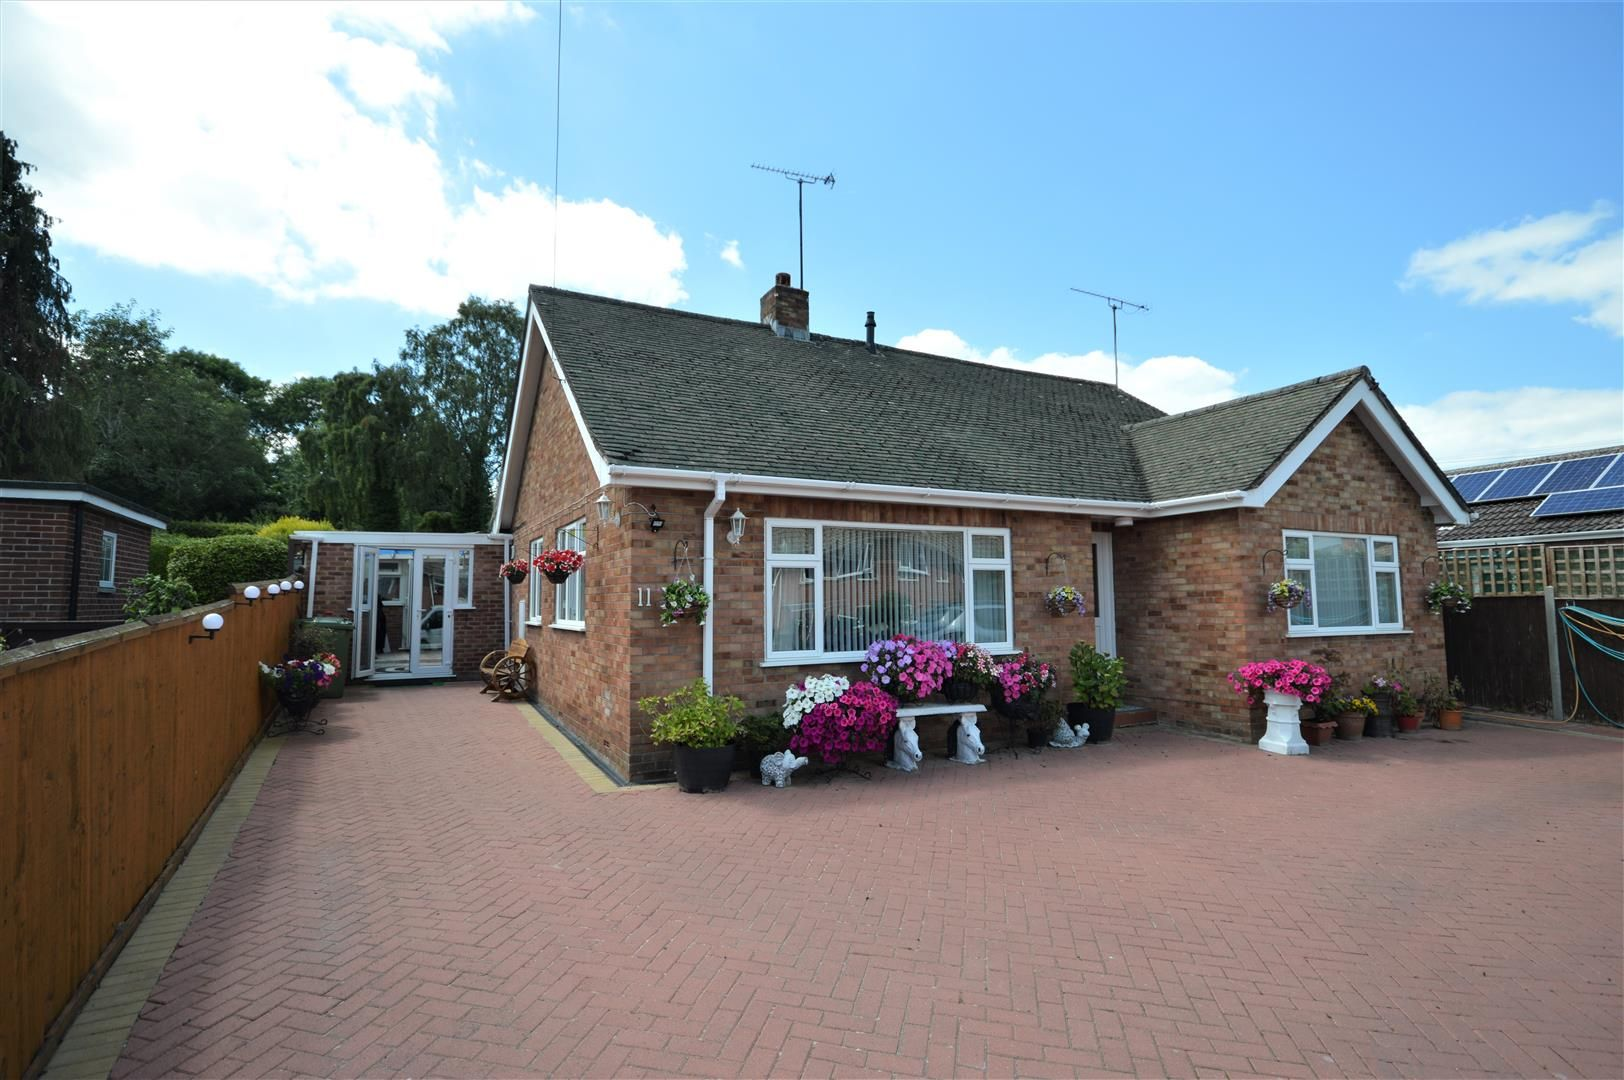 3 bed detached-bungalow for sale in Leominster 1